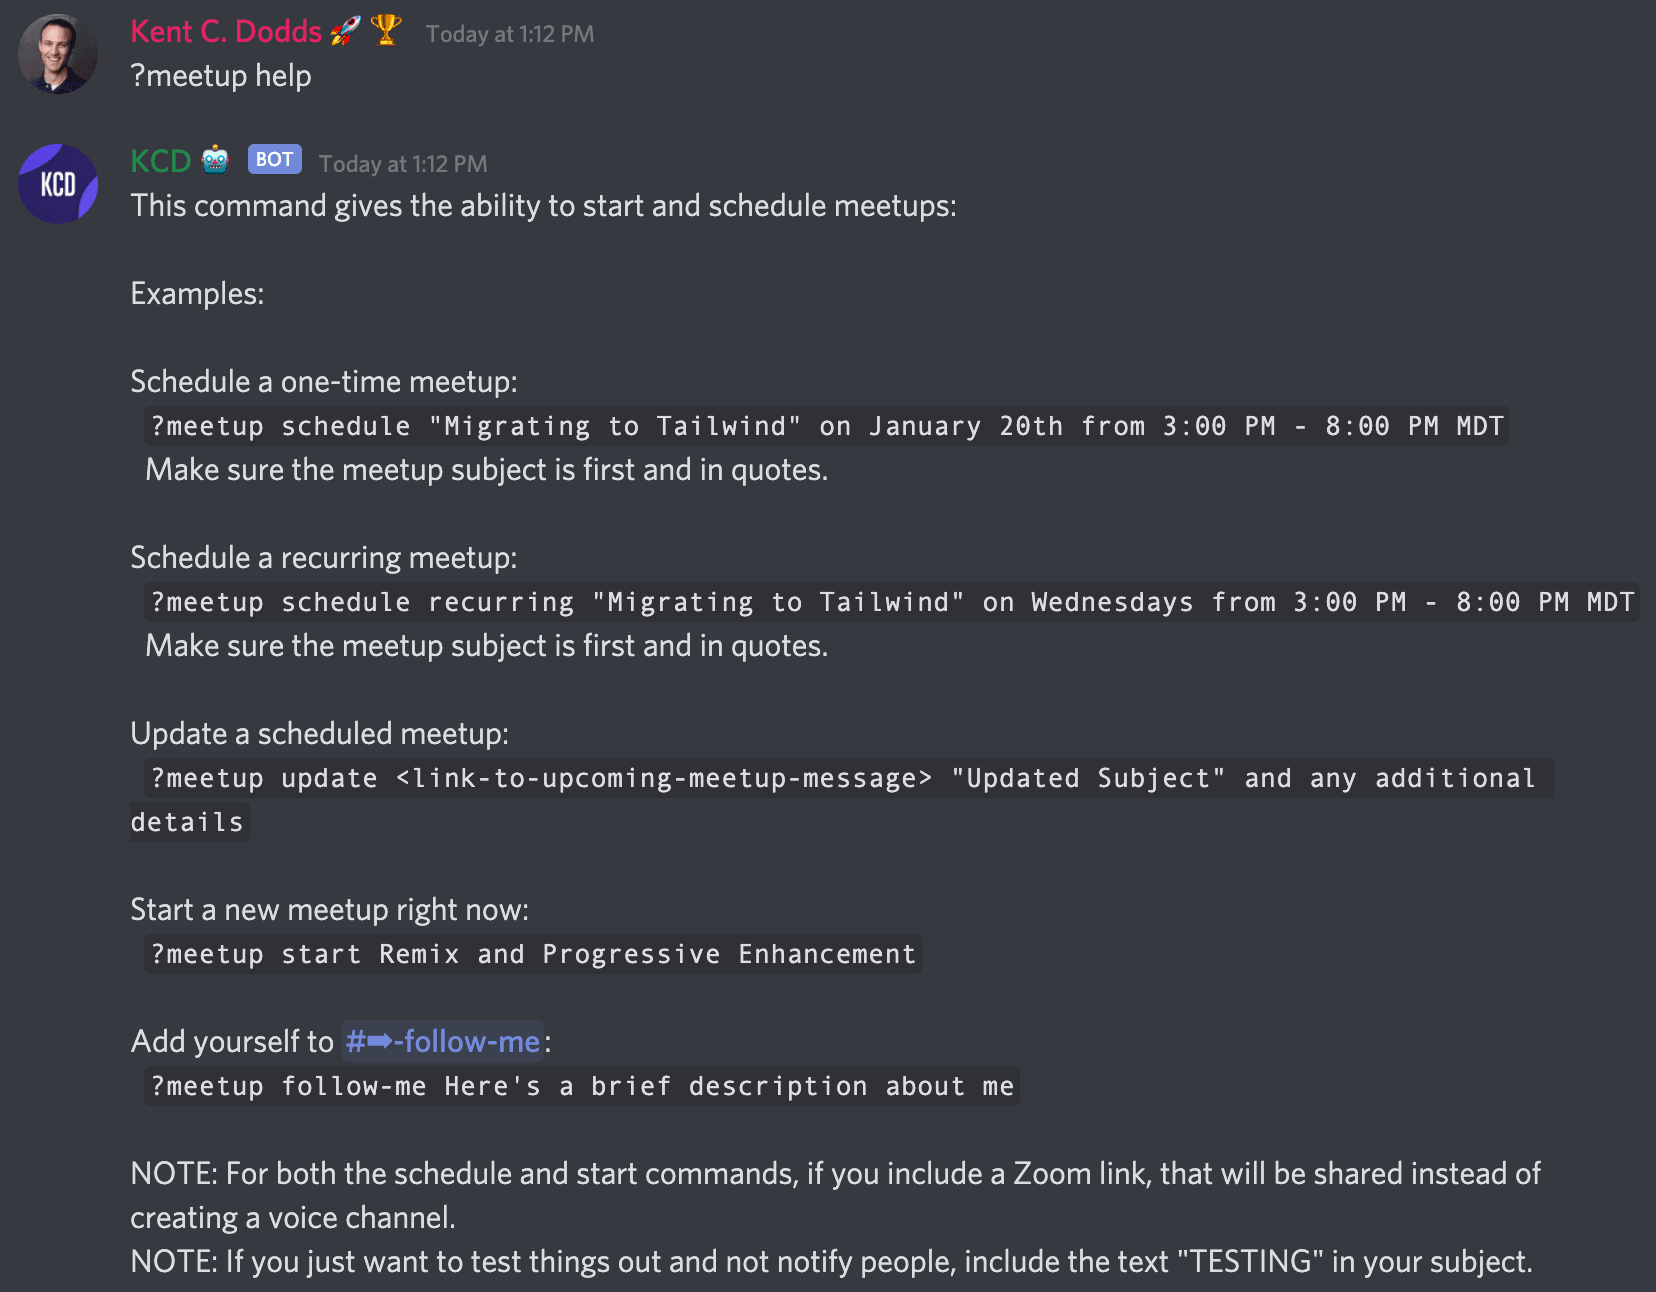 Discord chat showing the KCD bot replying to Kent saying ?meetup help